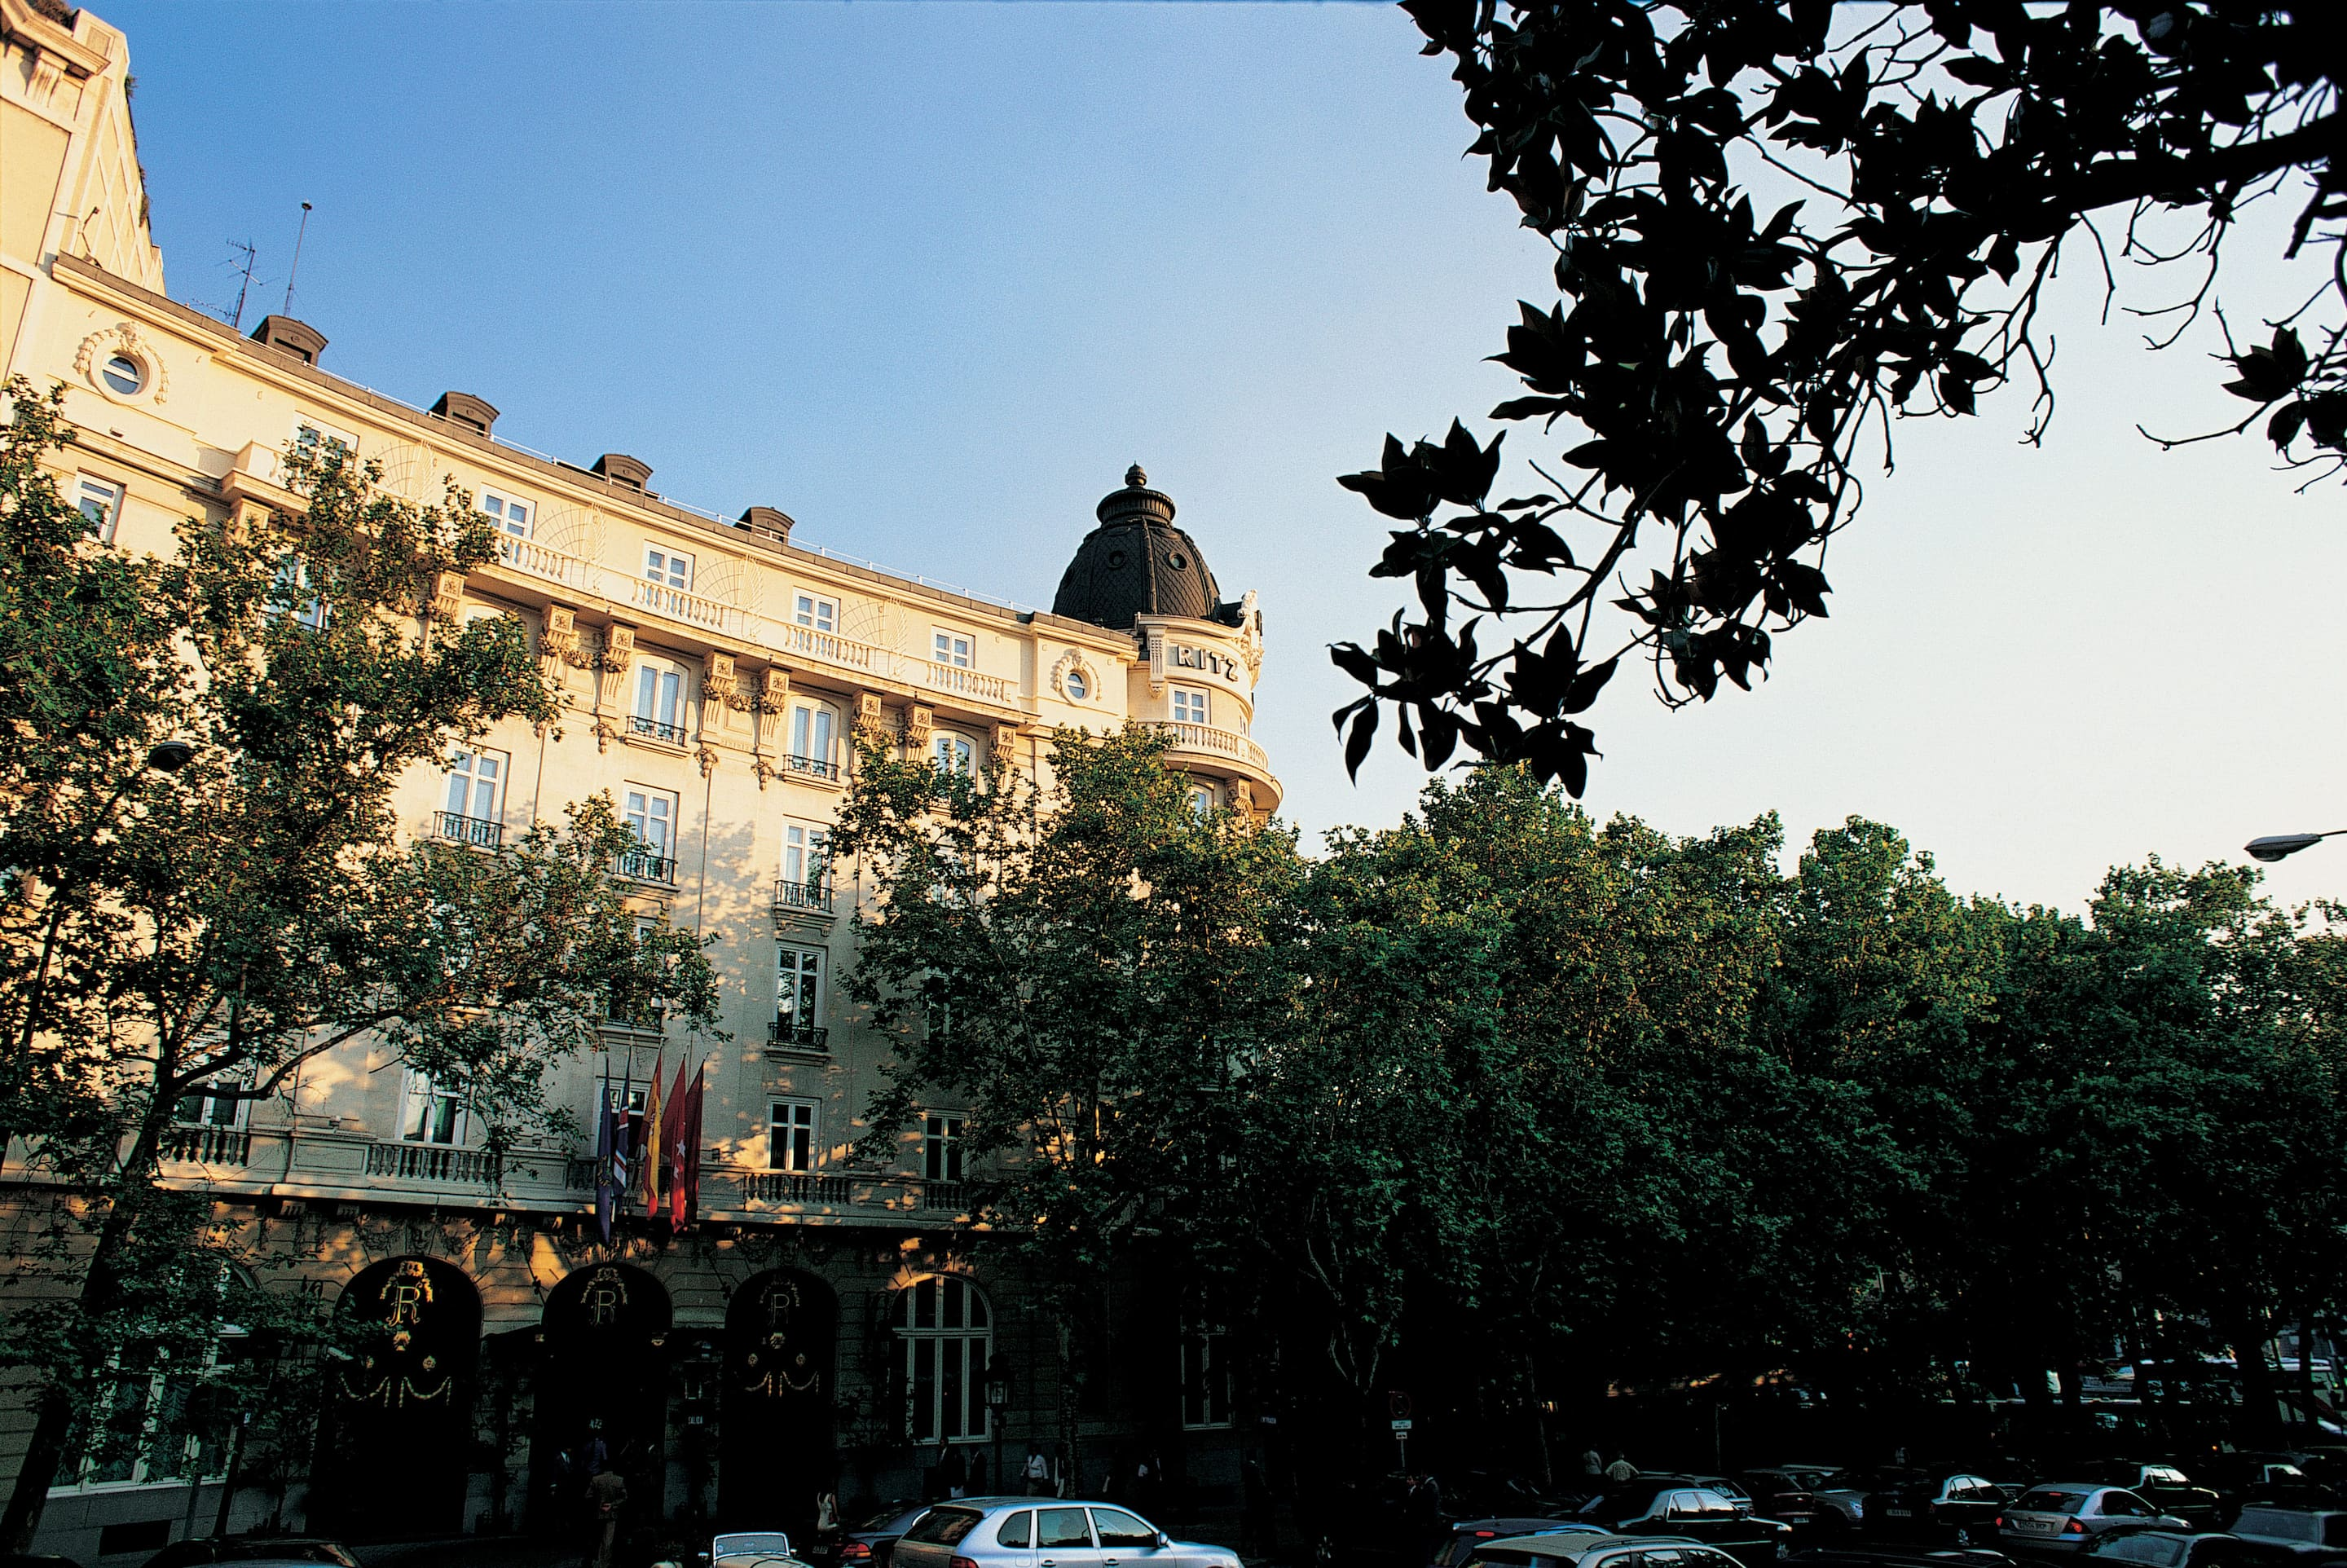 Luxury 5 Star Hotel | Retiro Park | Hotel Ritz, Madrid